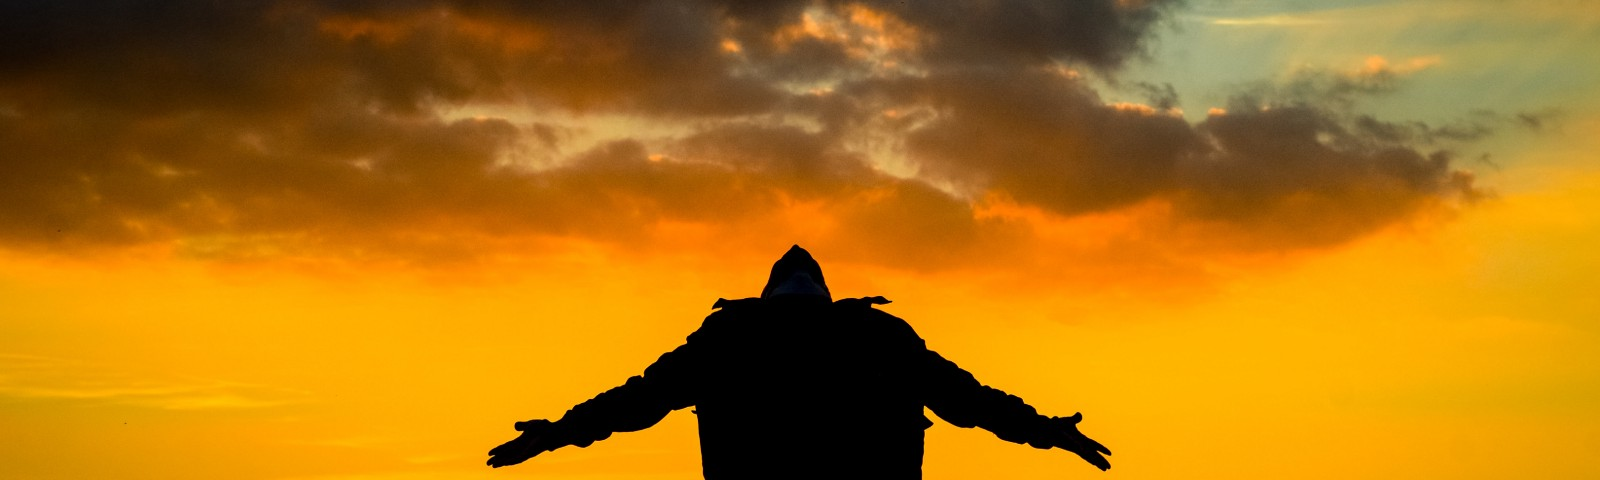 A man standing with arms outstretched, head back, in front of a beautiful sunset